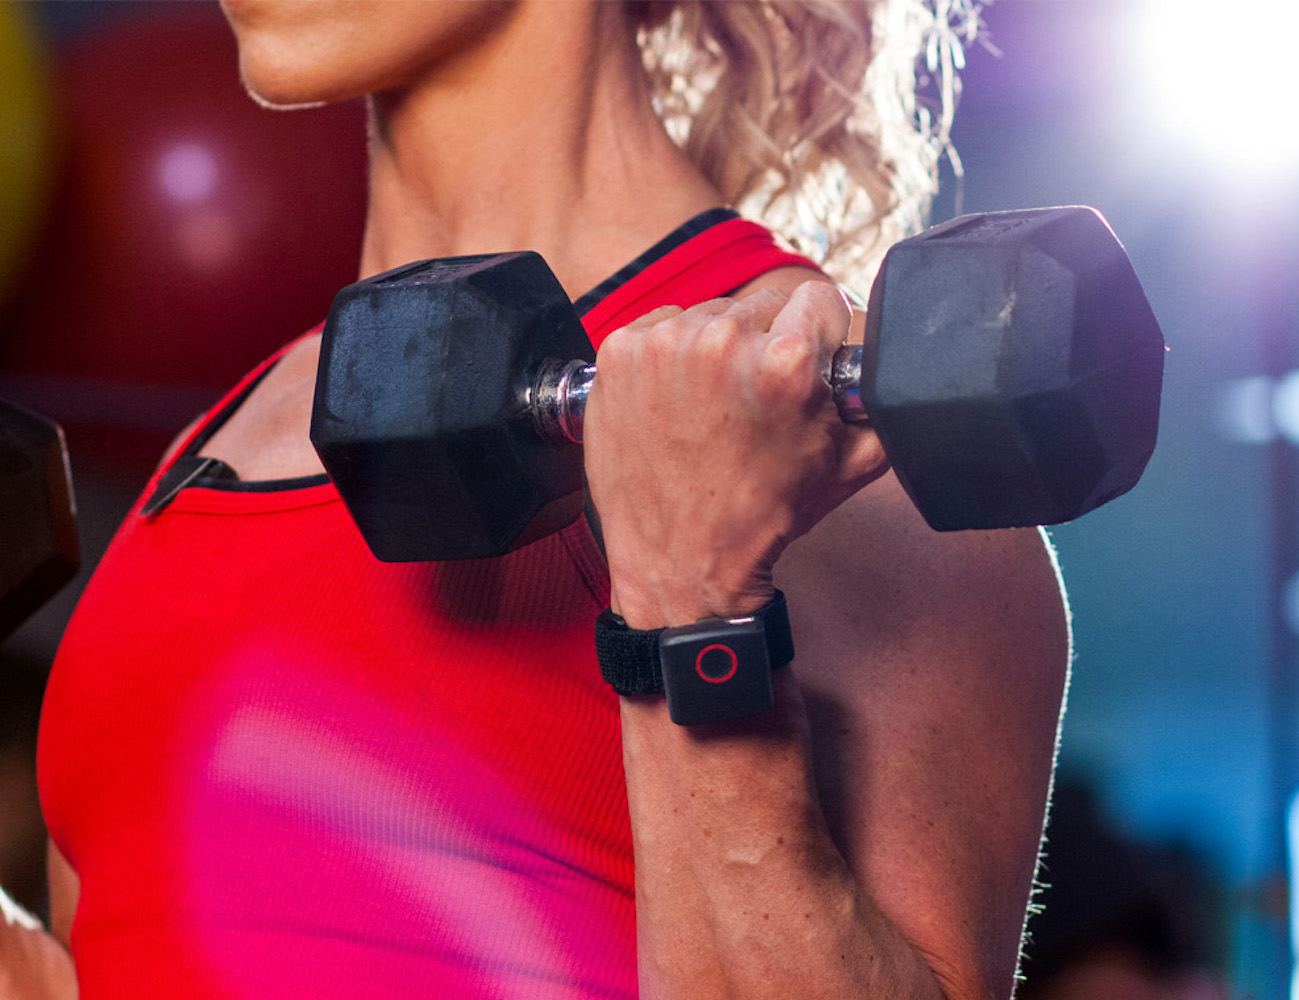 Ollinfit – The Wearable Personal Trainer